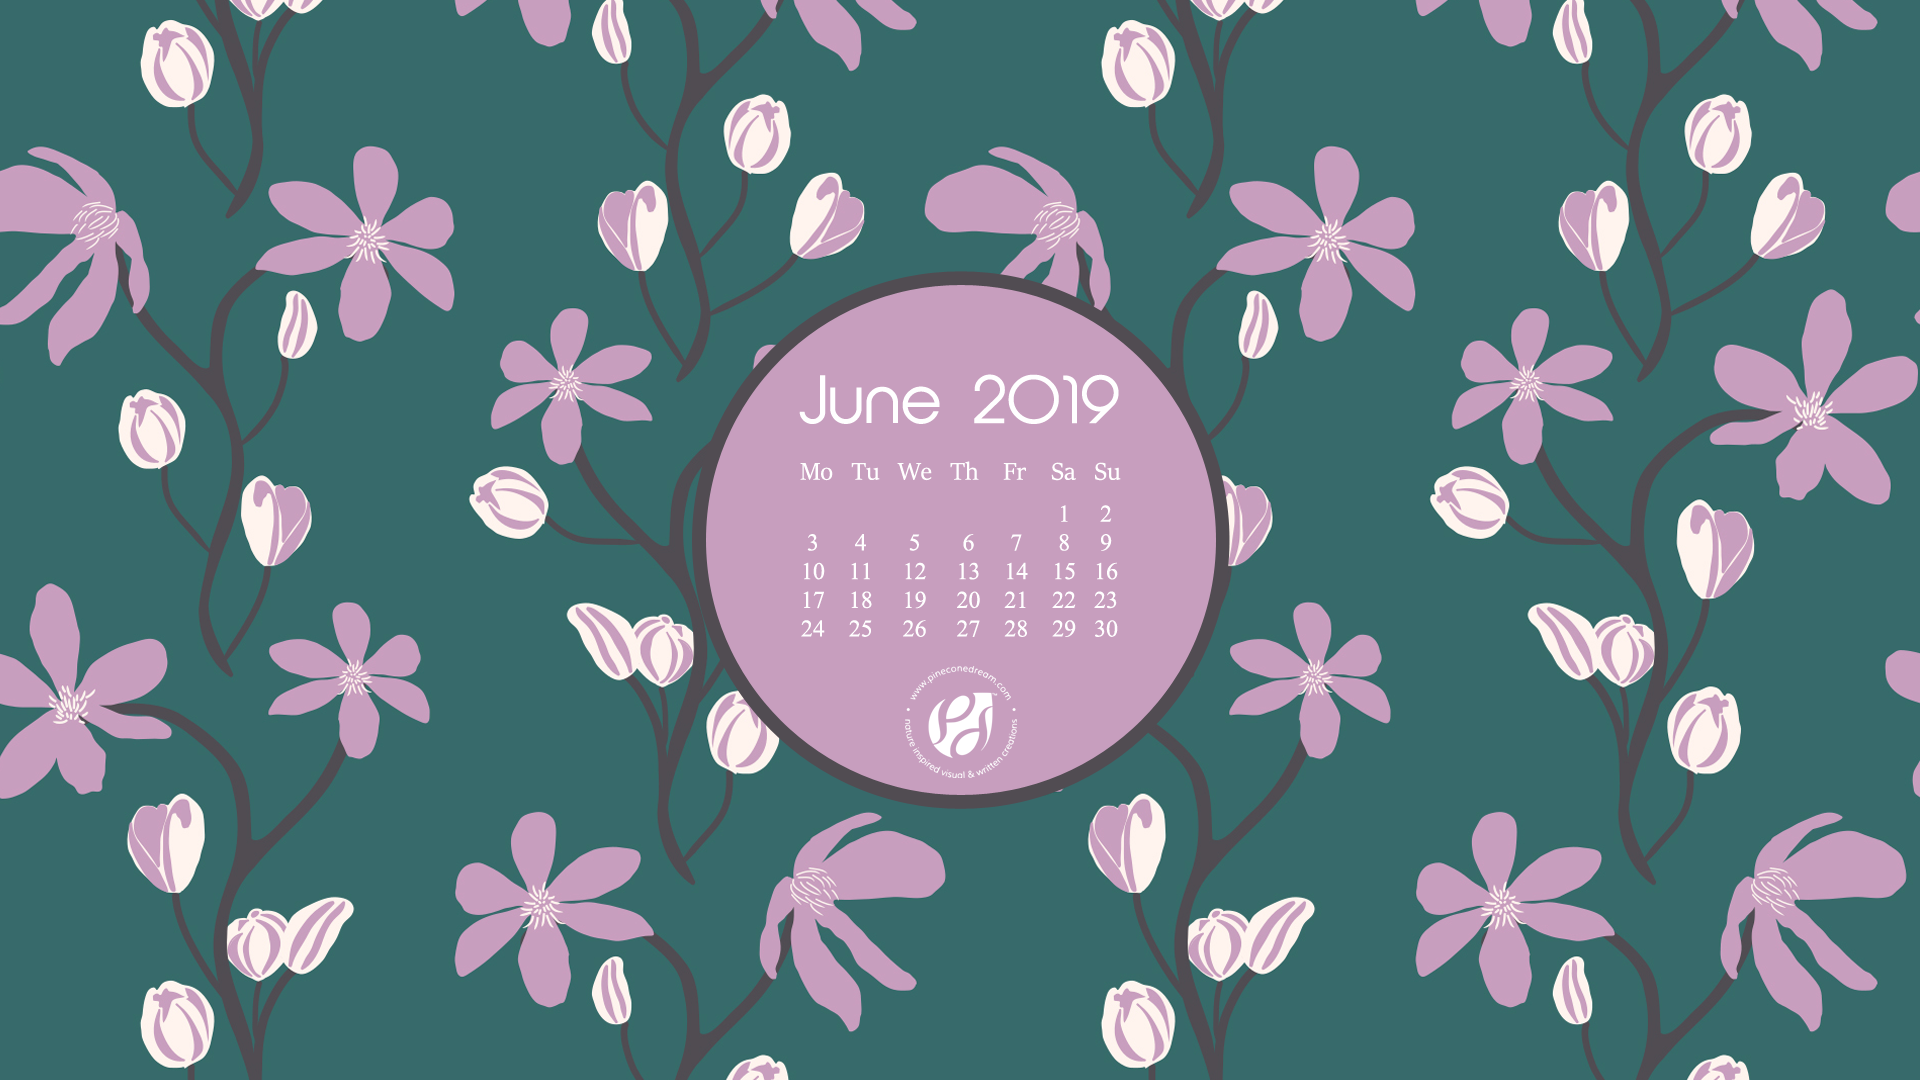 photograph regarding Printable Wallpapers called June 2019 absolutely free calendar wallpapers printable planner